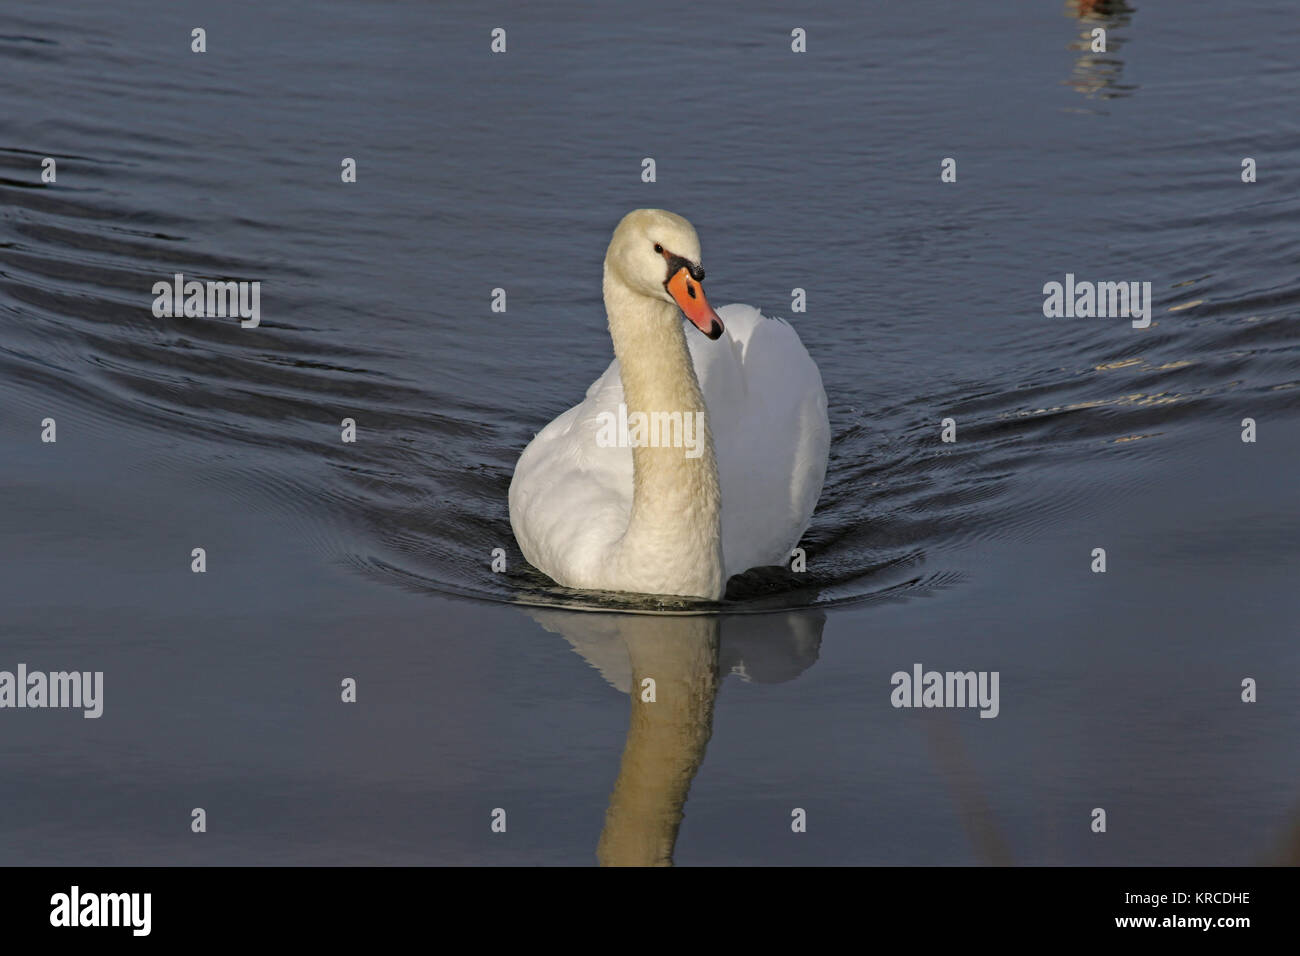 mute swan close up Latin name Cygnus olor family anatidae swimming in a lake in central Italy in December - Stock Image